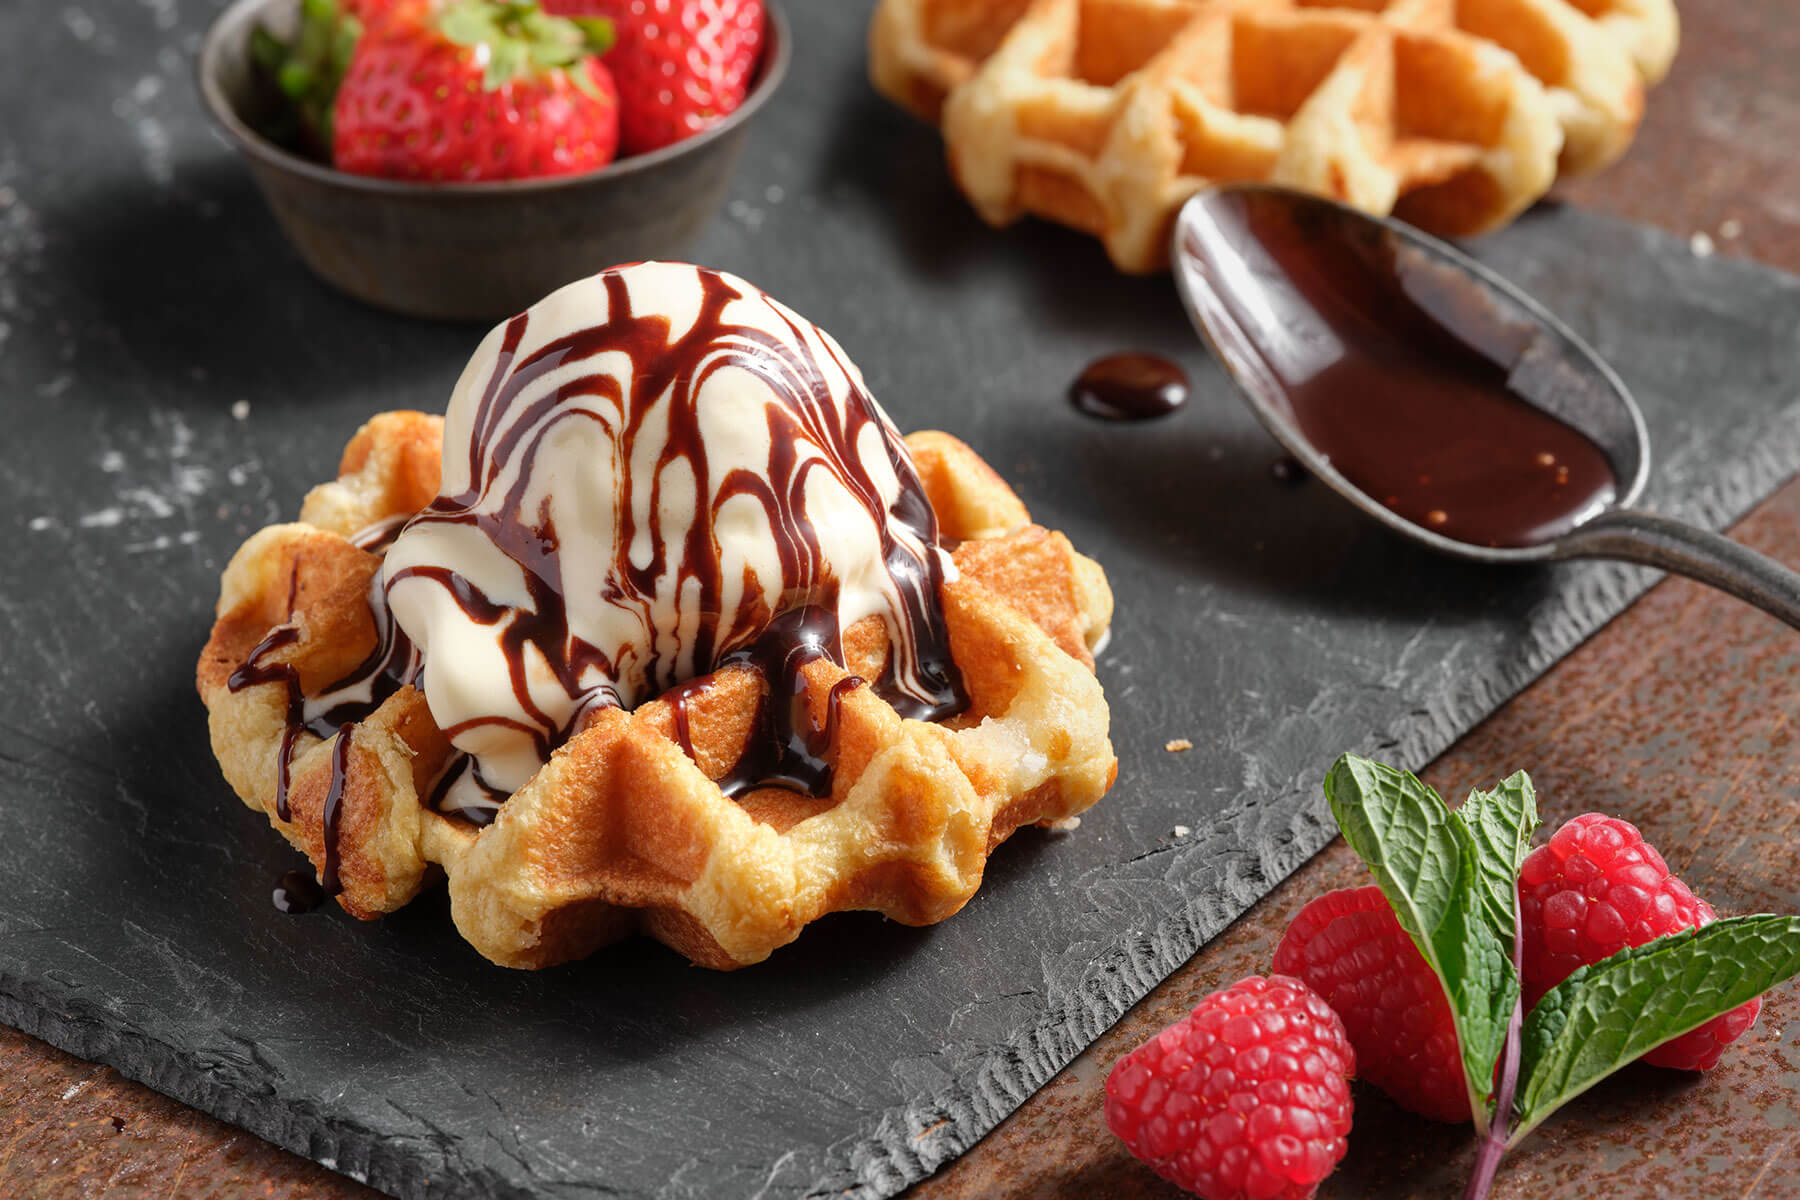 scoop of ice cream on top of a waffle